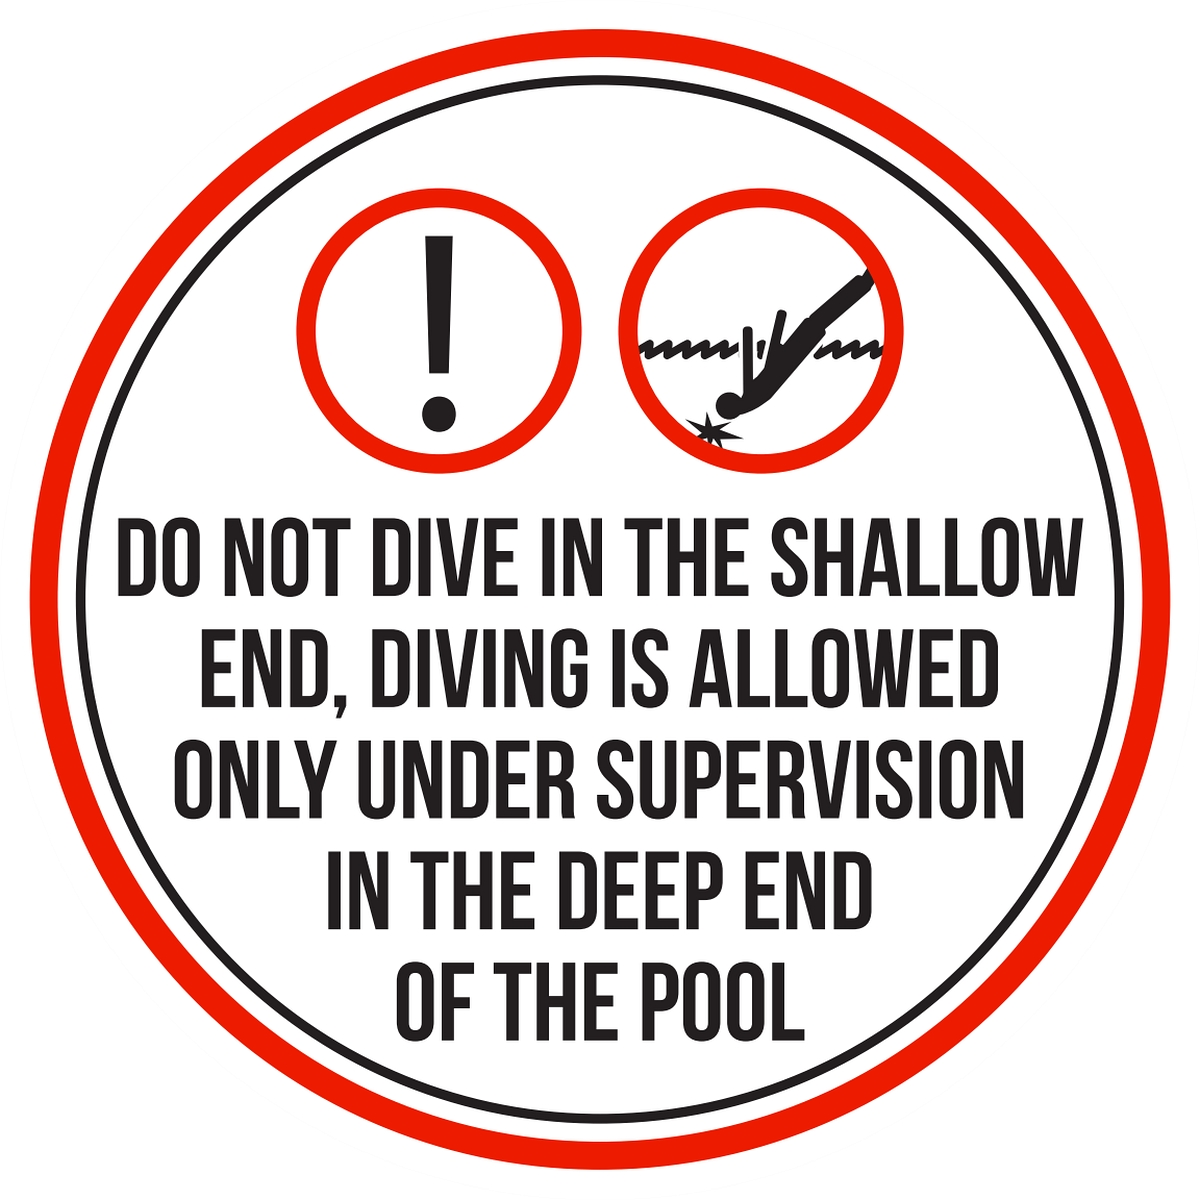 Do Not Dive In The Shallow End, Diving Is Allowed Only Under Supervision In The Deep Pool Spa Warning Round Sign-12 Inch